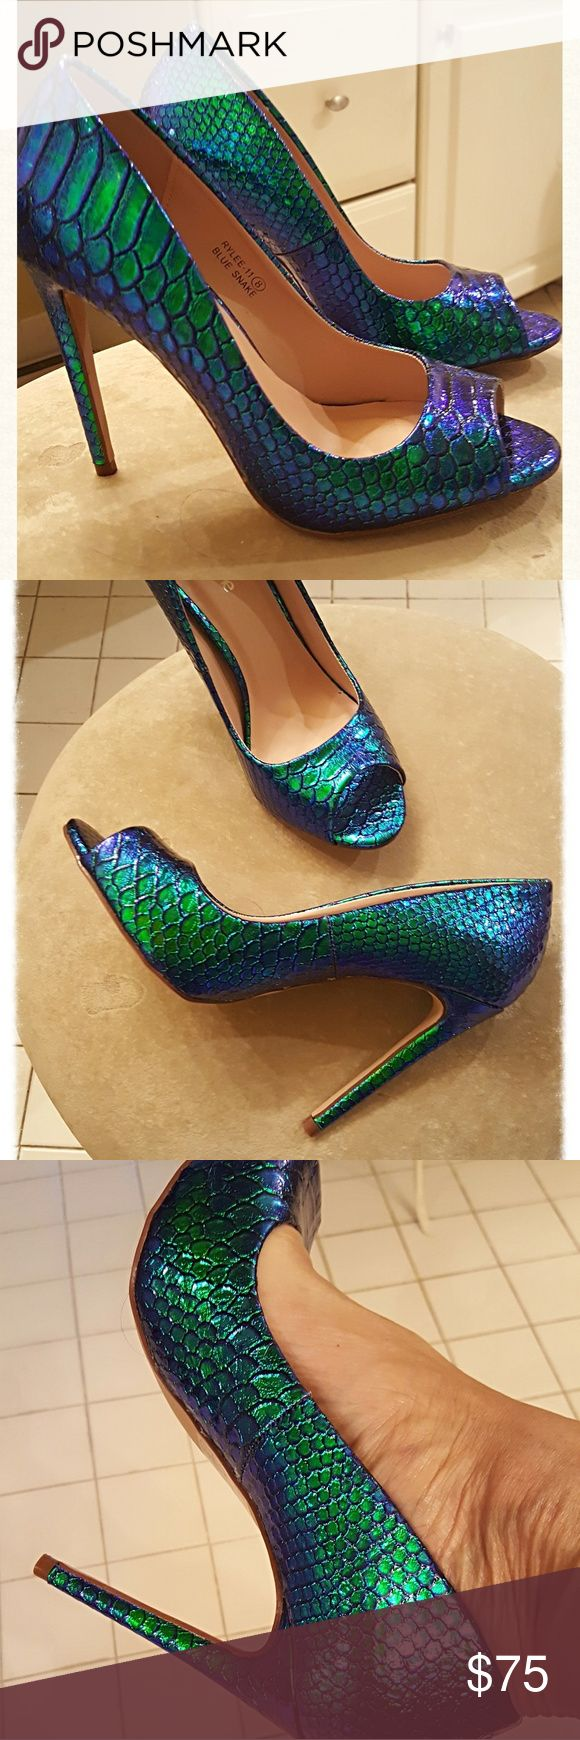 """REDUCED!💜💚TGIF SPECIAL!💜💚HOST PICK💚💜 These shoes are truly made for the High Heel Diva!💙 Iridescent hologram colors range from turquoise to purple. Heel is 4-3/4 """". They run 1/2 size small. NIB.💚 Price is firm.💜 Shoes Heels"""